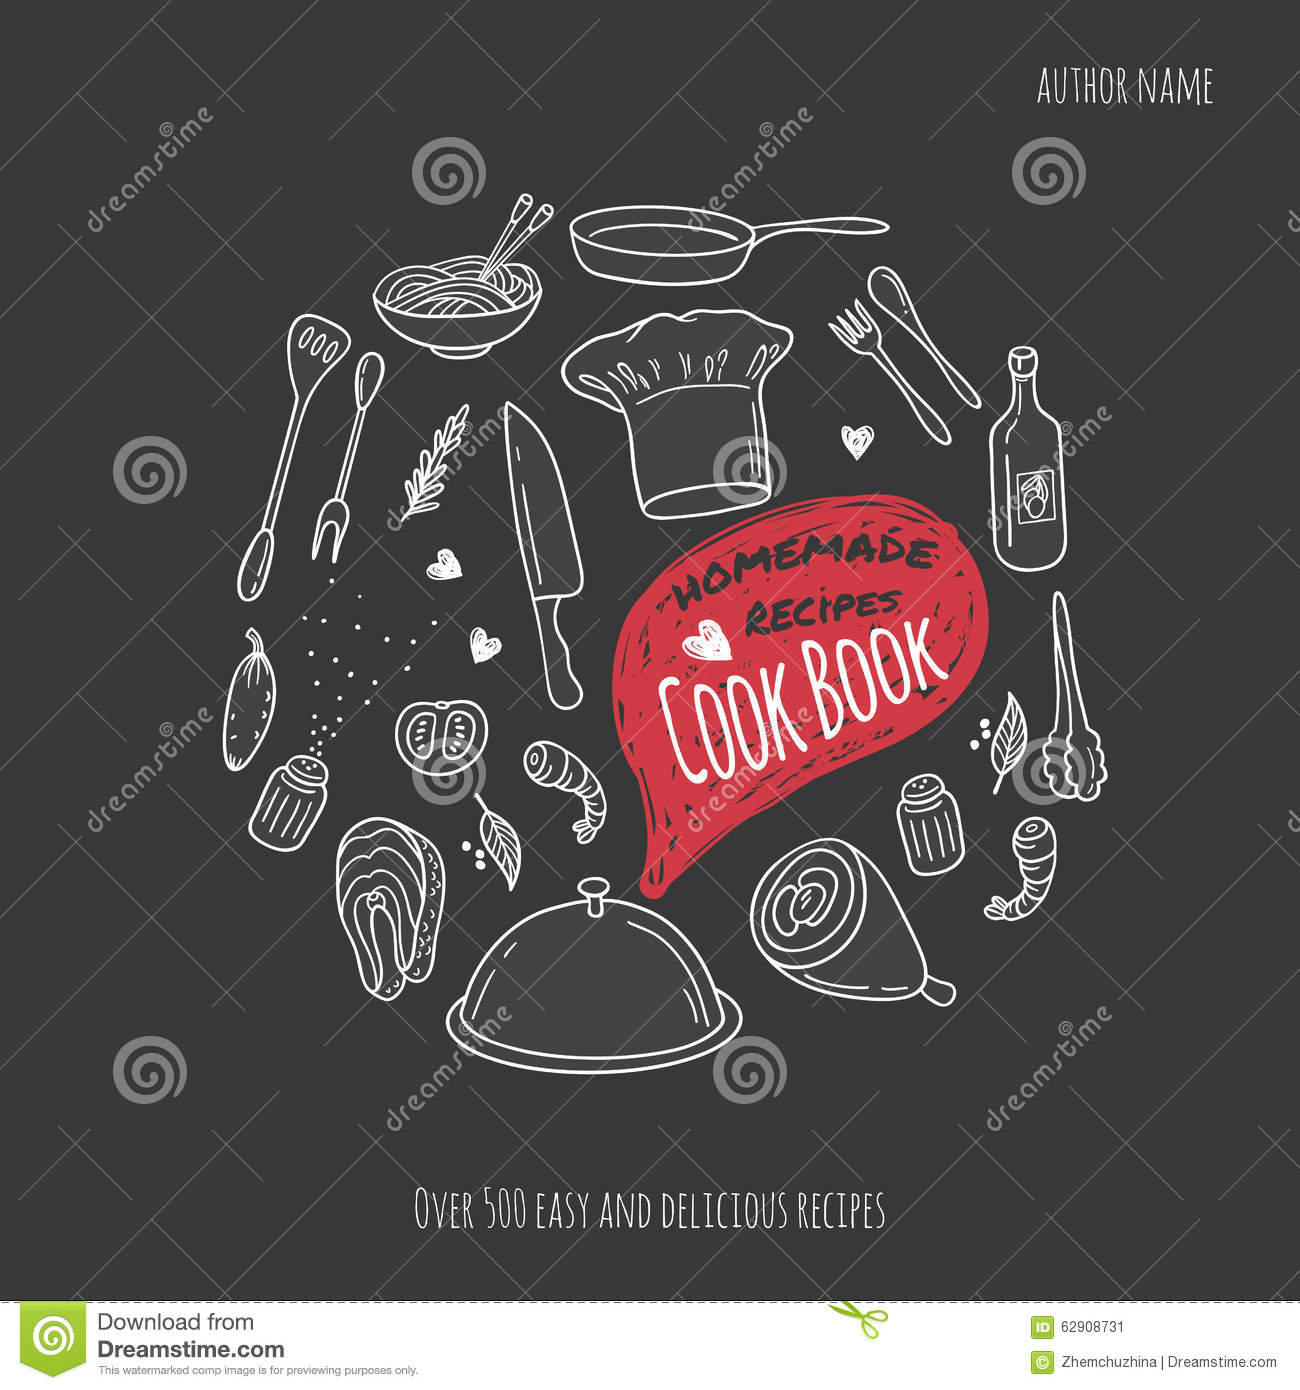 Food Book Cover Vector : Cook book cover with hand drawn food illustrations stock